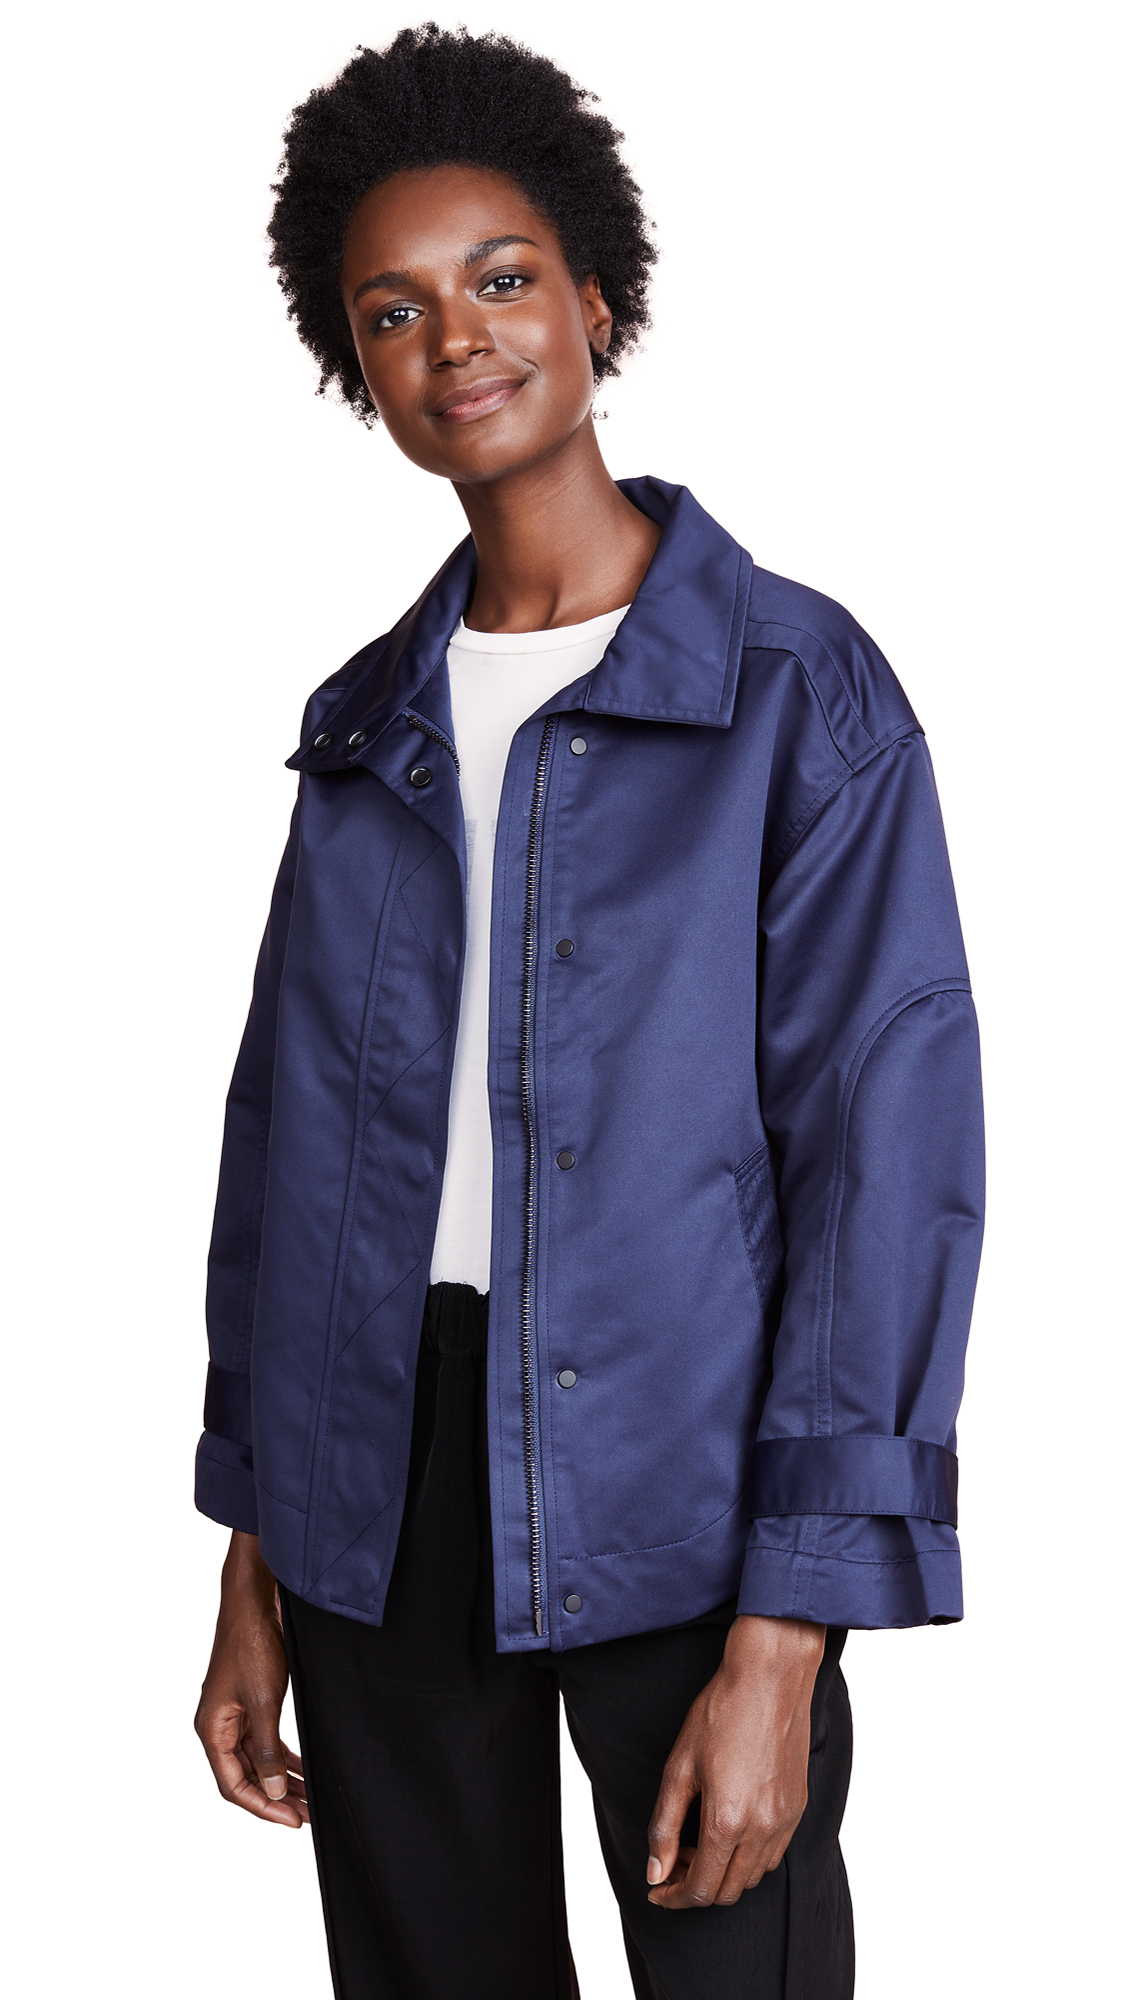 AYR The Pro Jacket in Navy